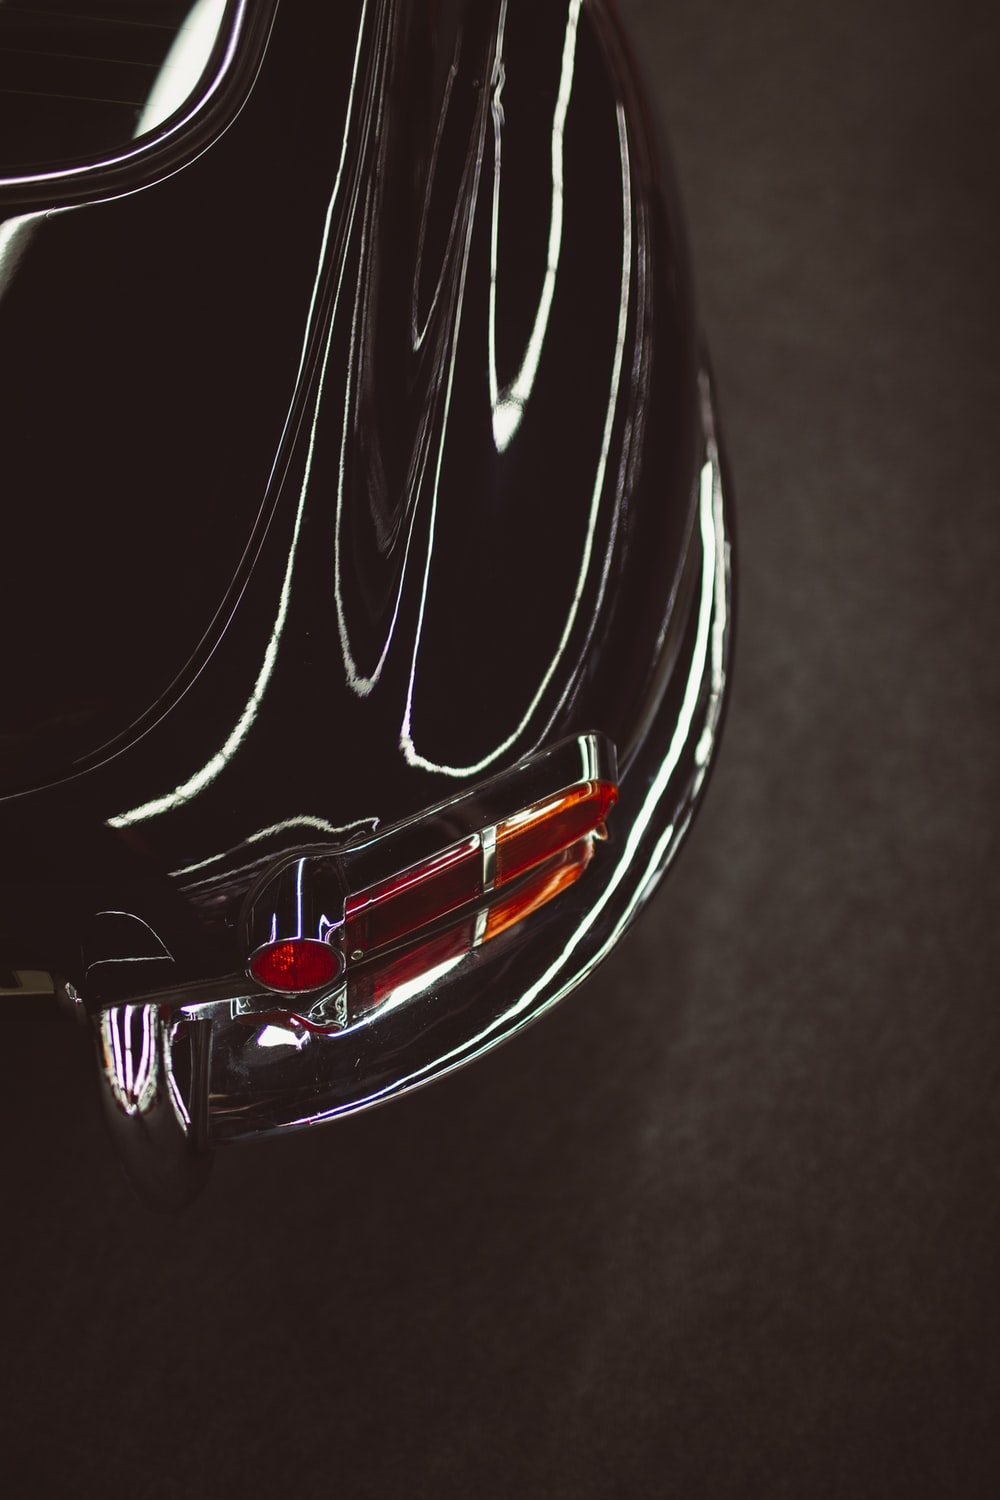 red and black car in close up photography